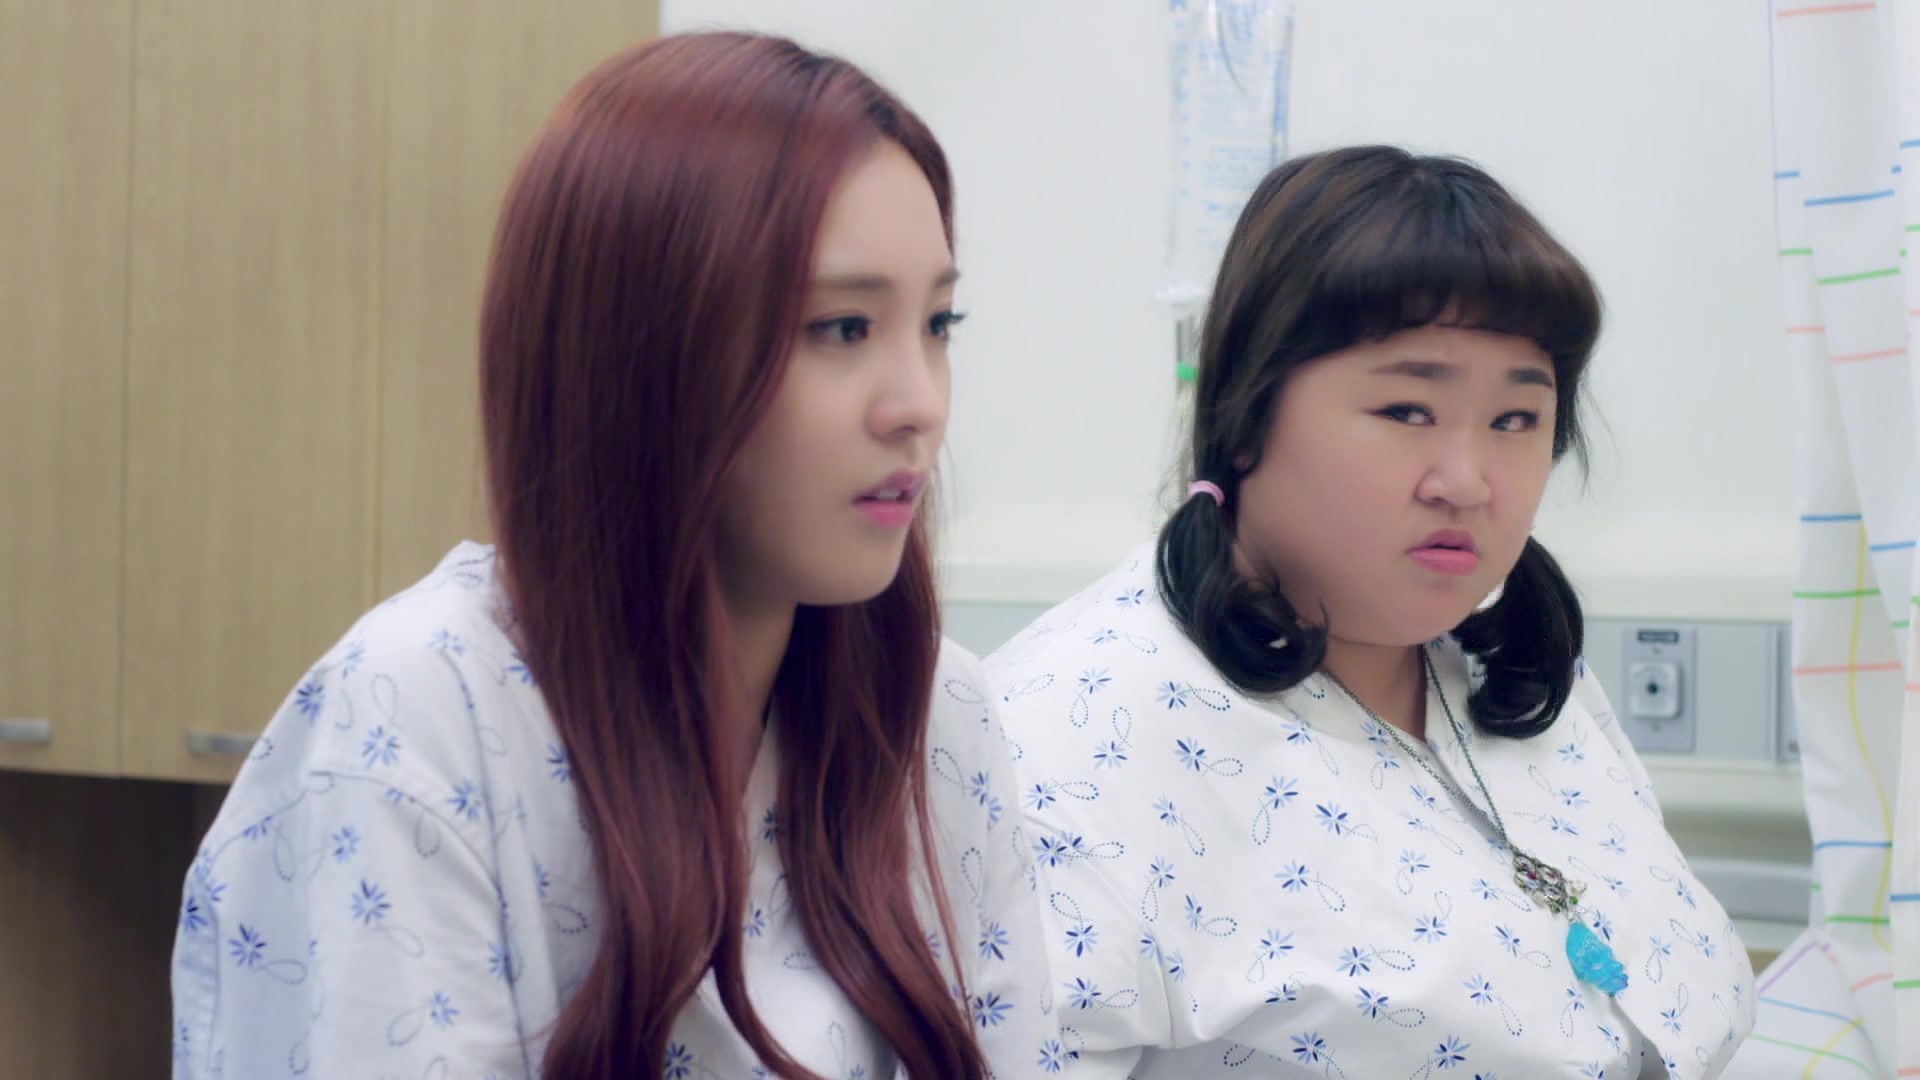 The Miracle Episode 3